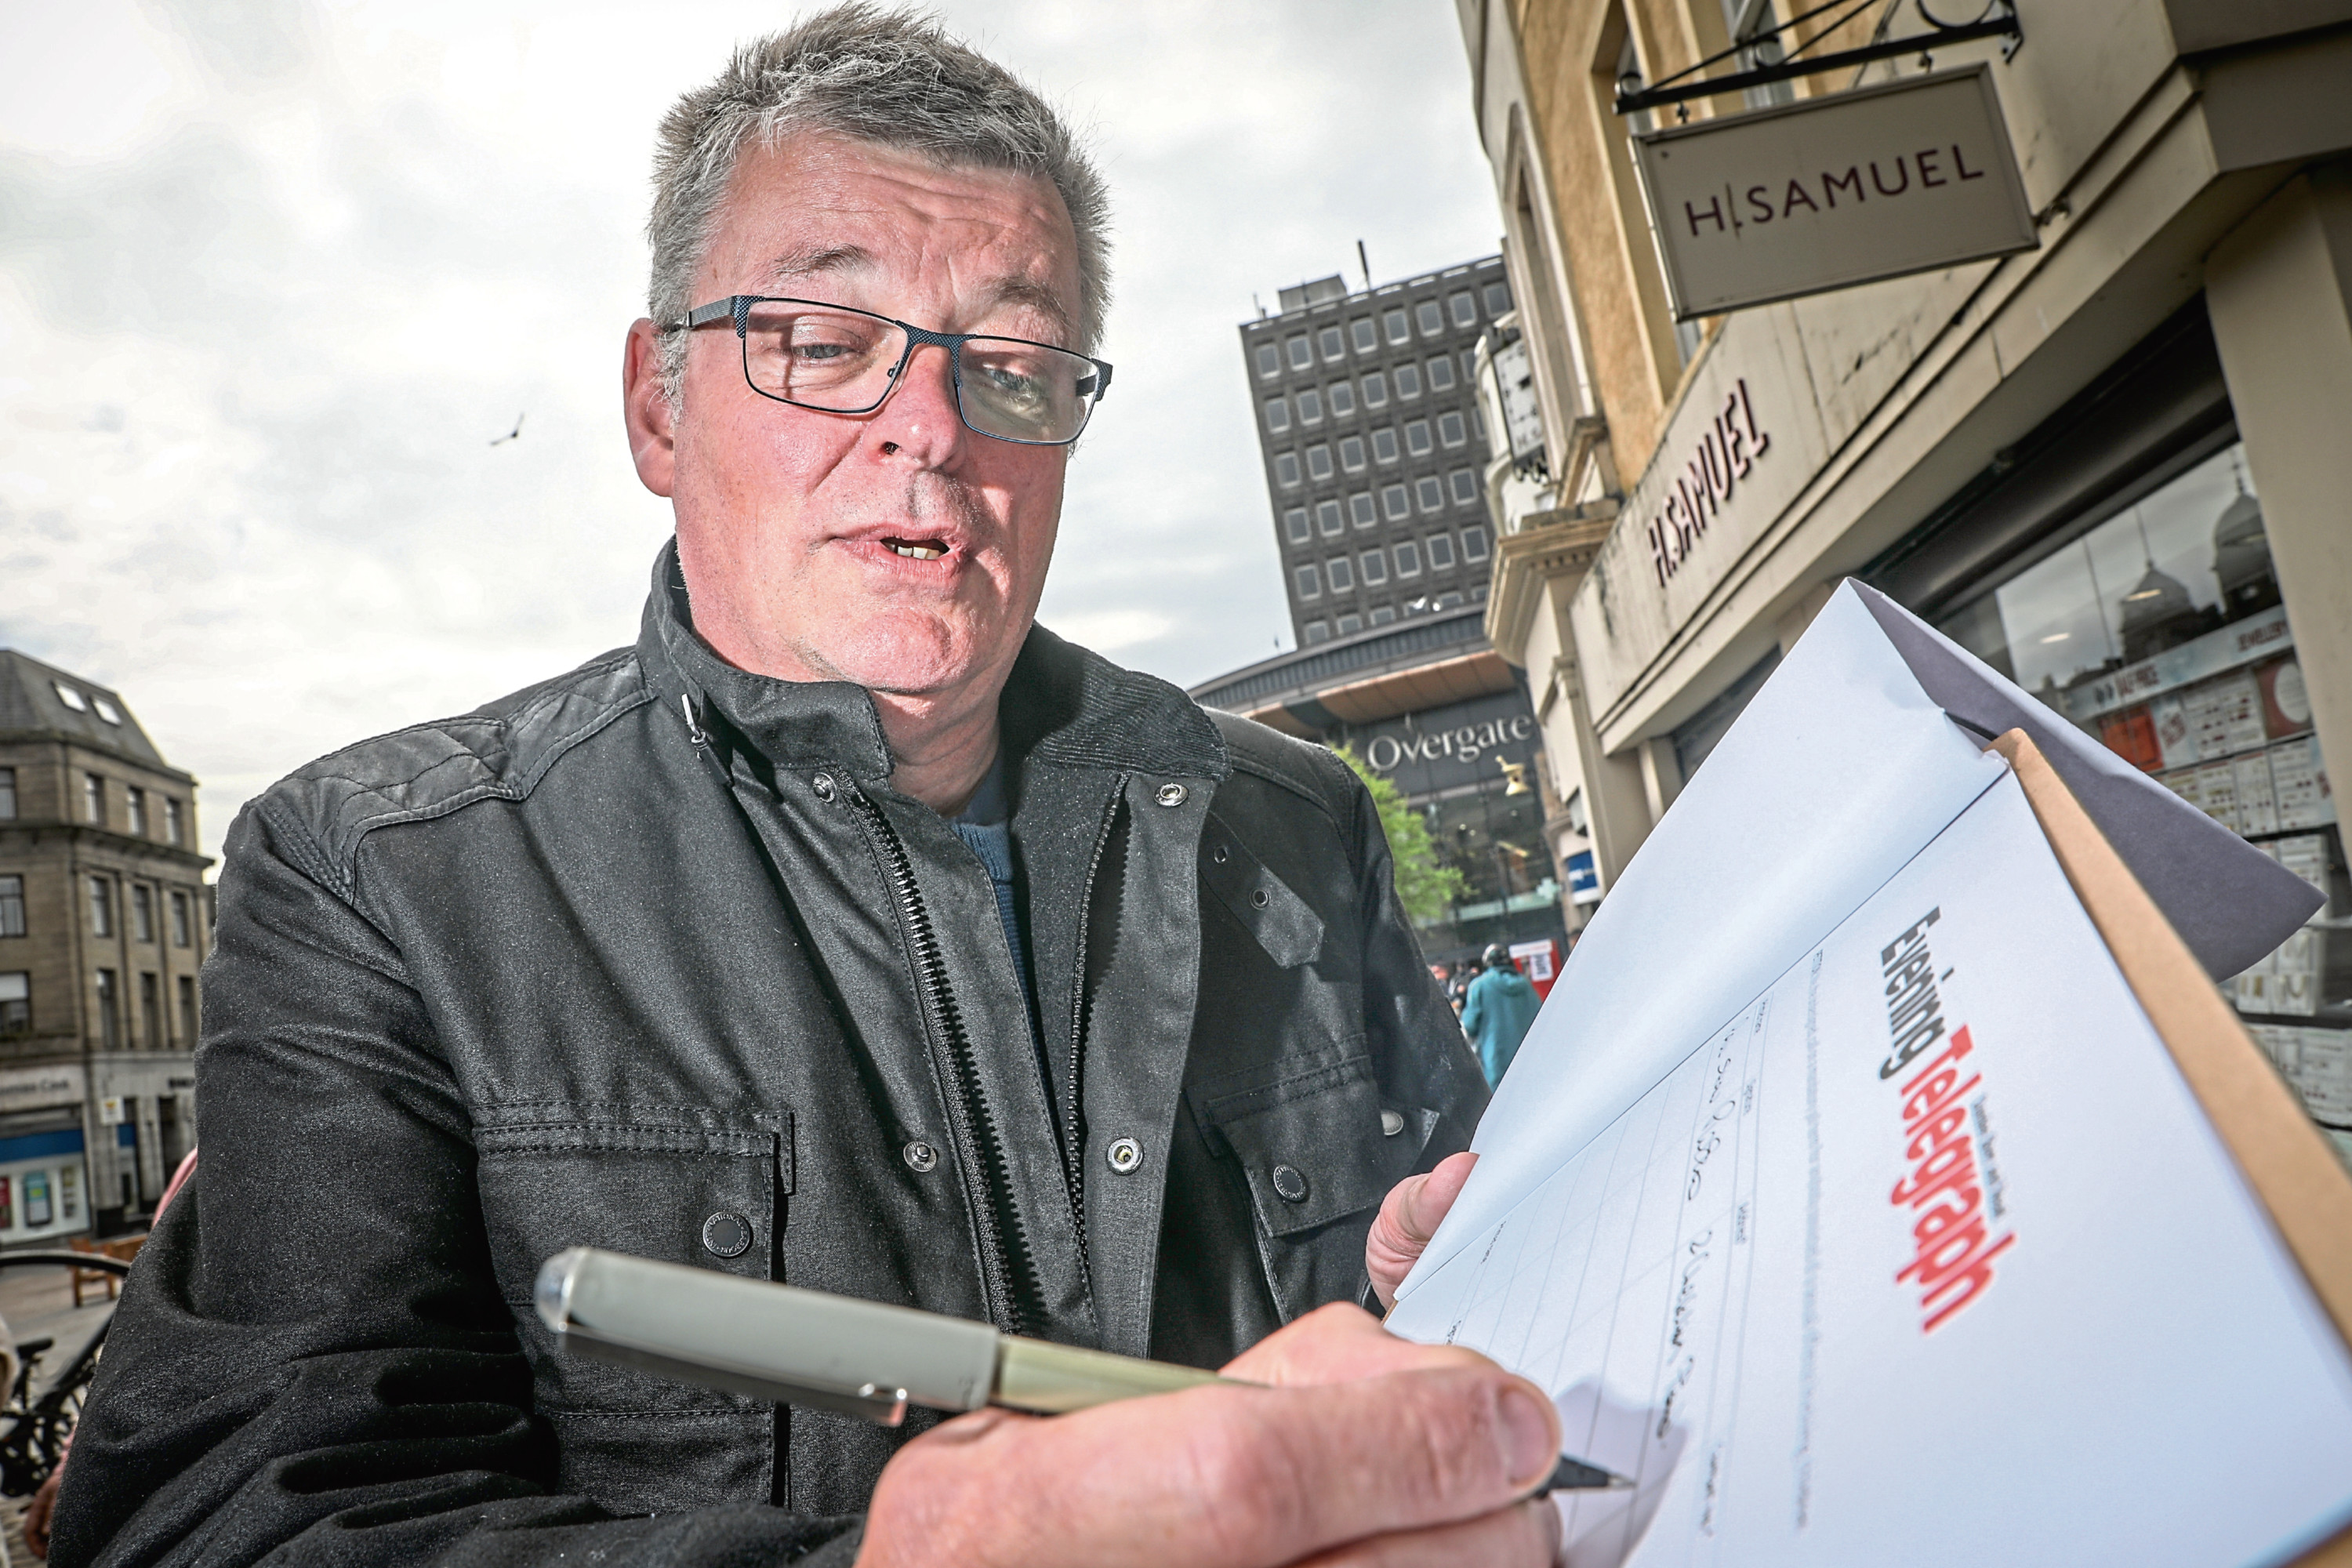 Paul Shaw was happy to add his name to the thousands of signatures when the Tele was out and about in Dundee.